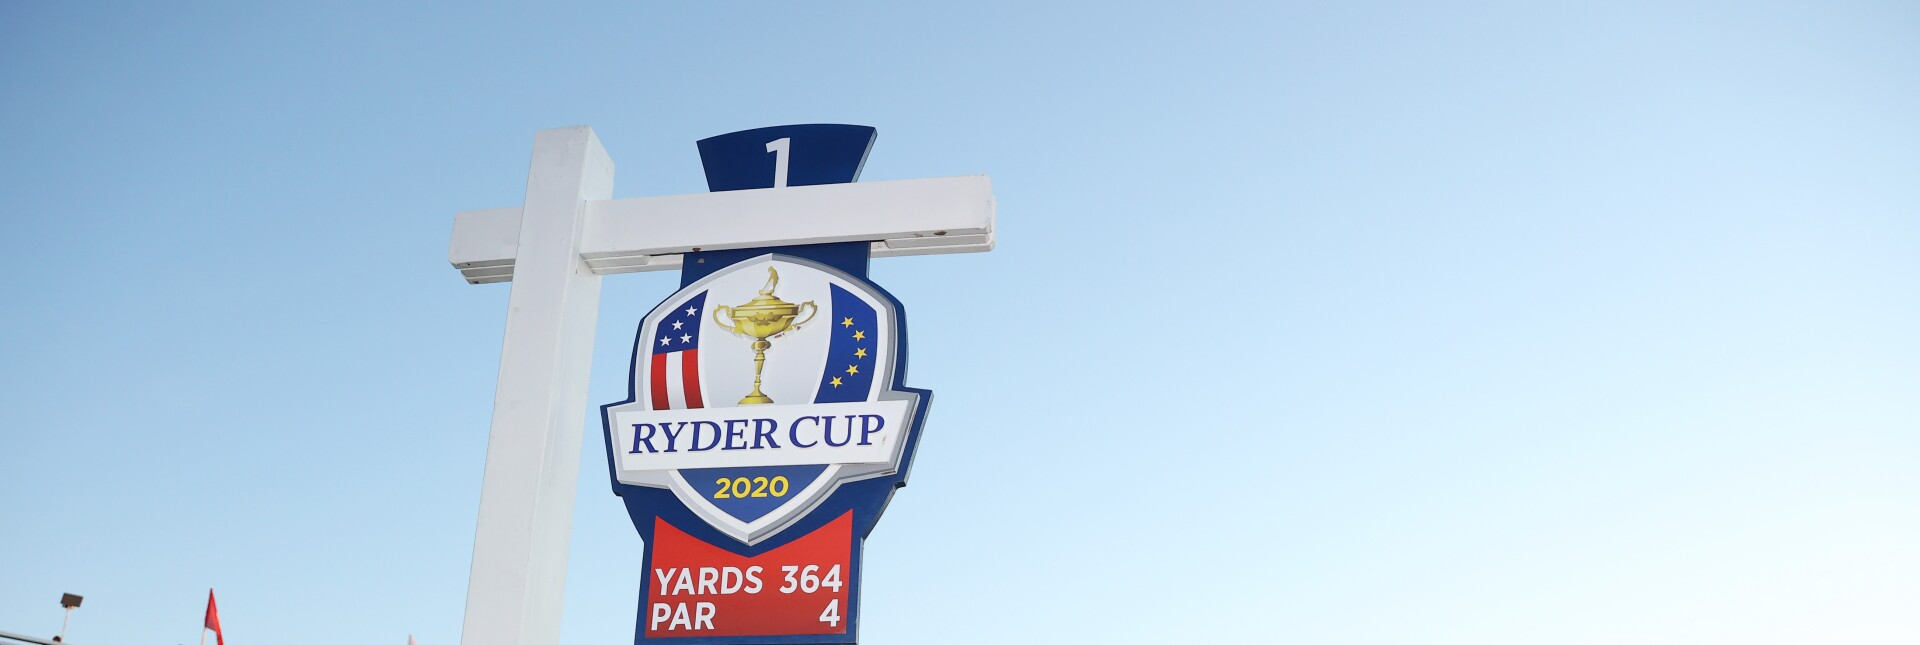 43rd Ryder Cup - Morning Foursome Matches